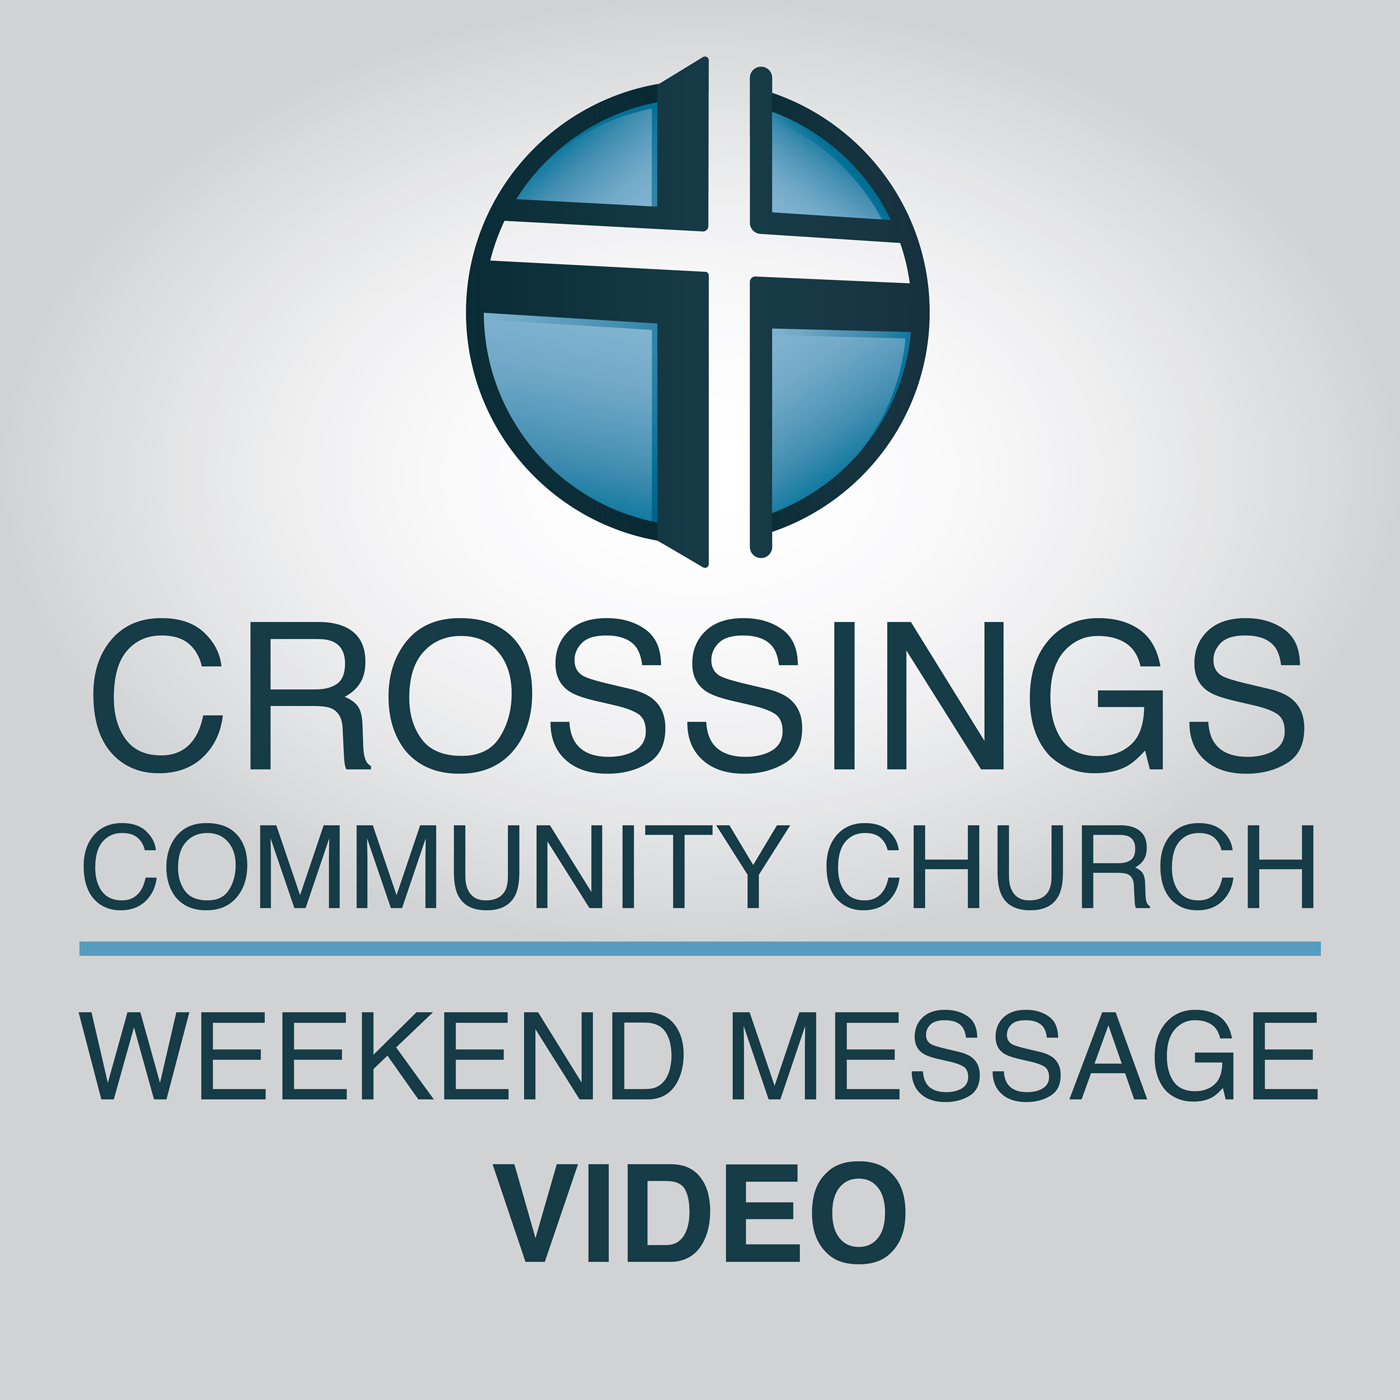 Crossings Community Church - Video